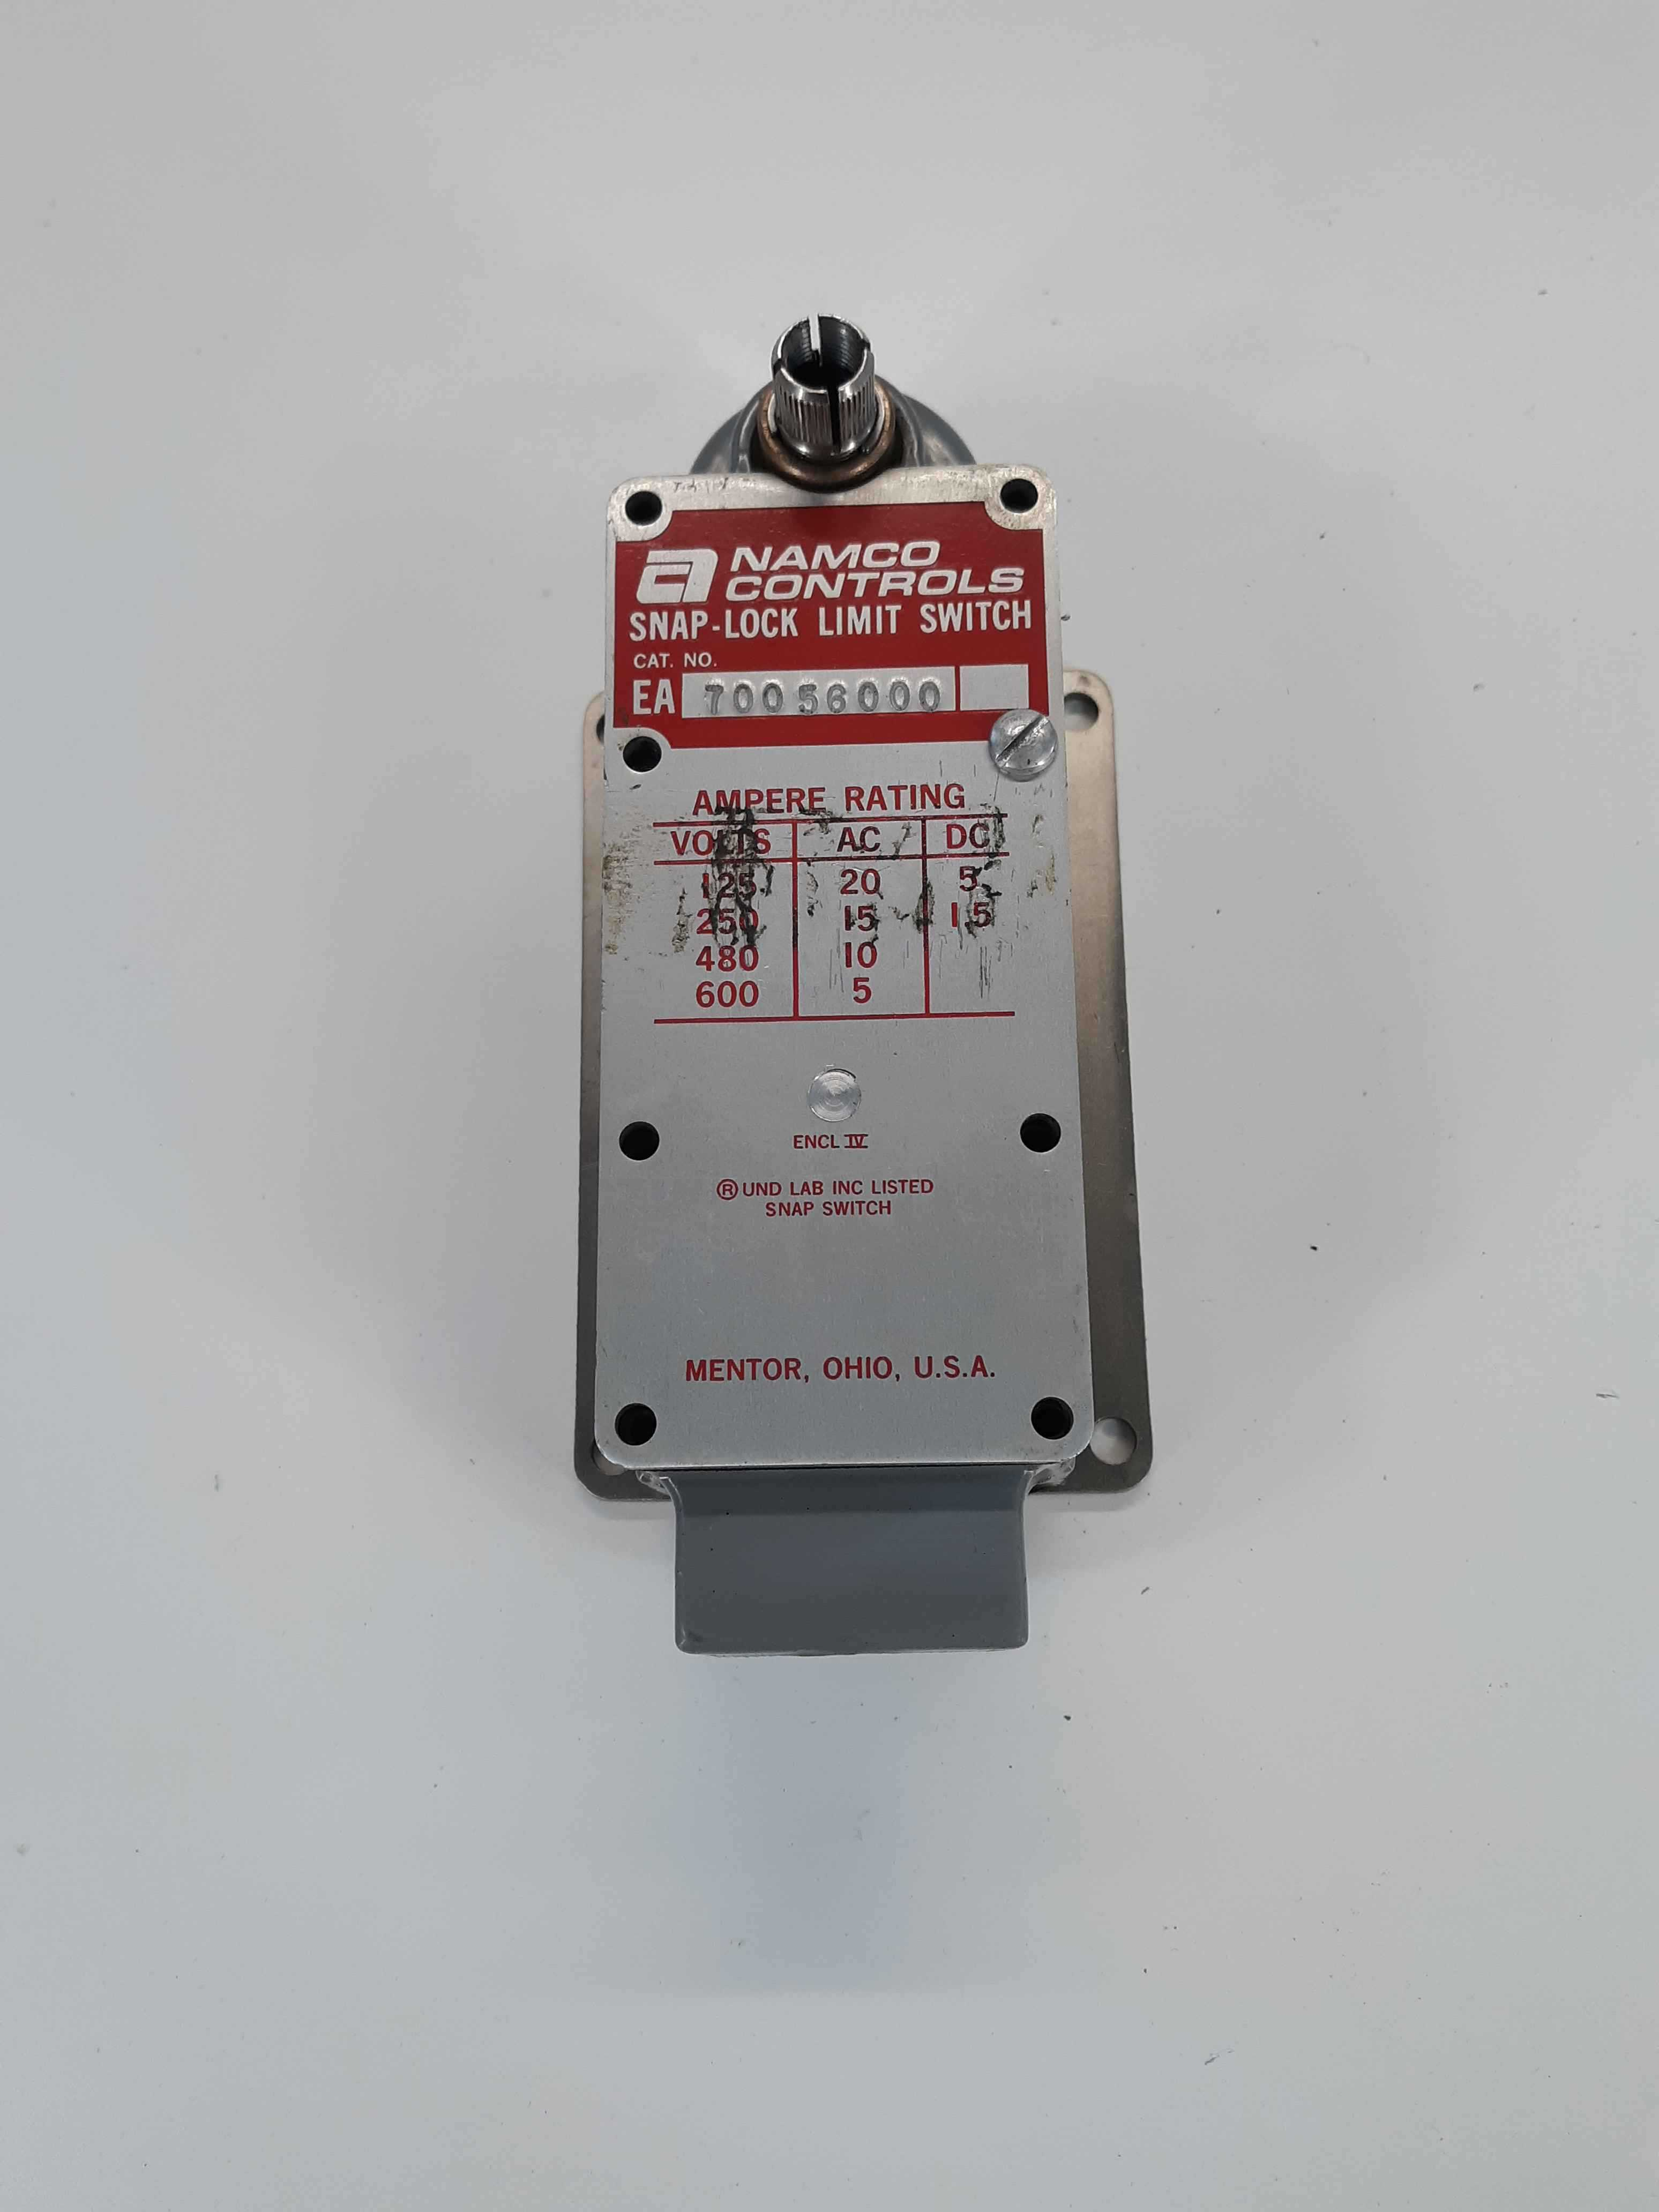 Namco Controls EA70056000 Snap-Lock Limit Switch